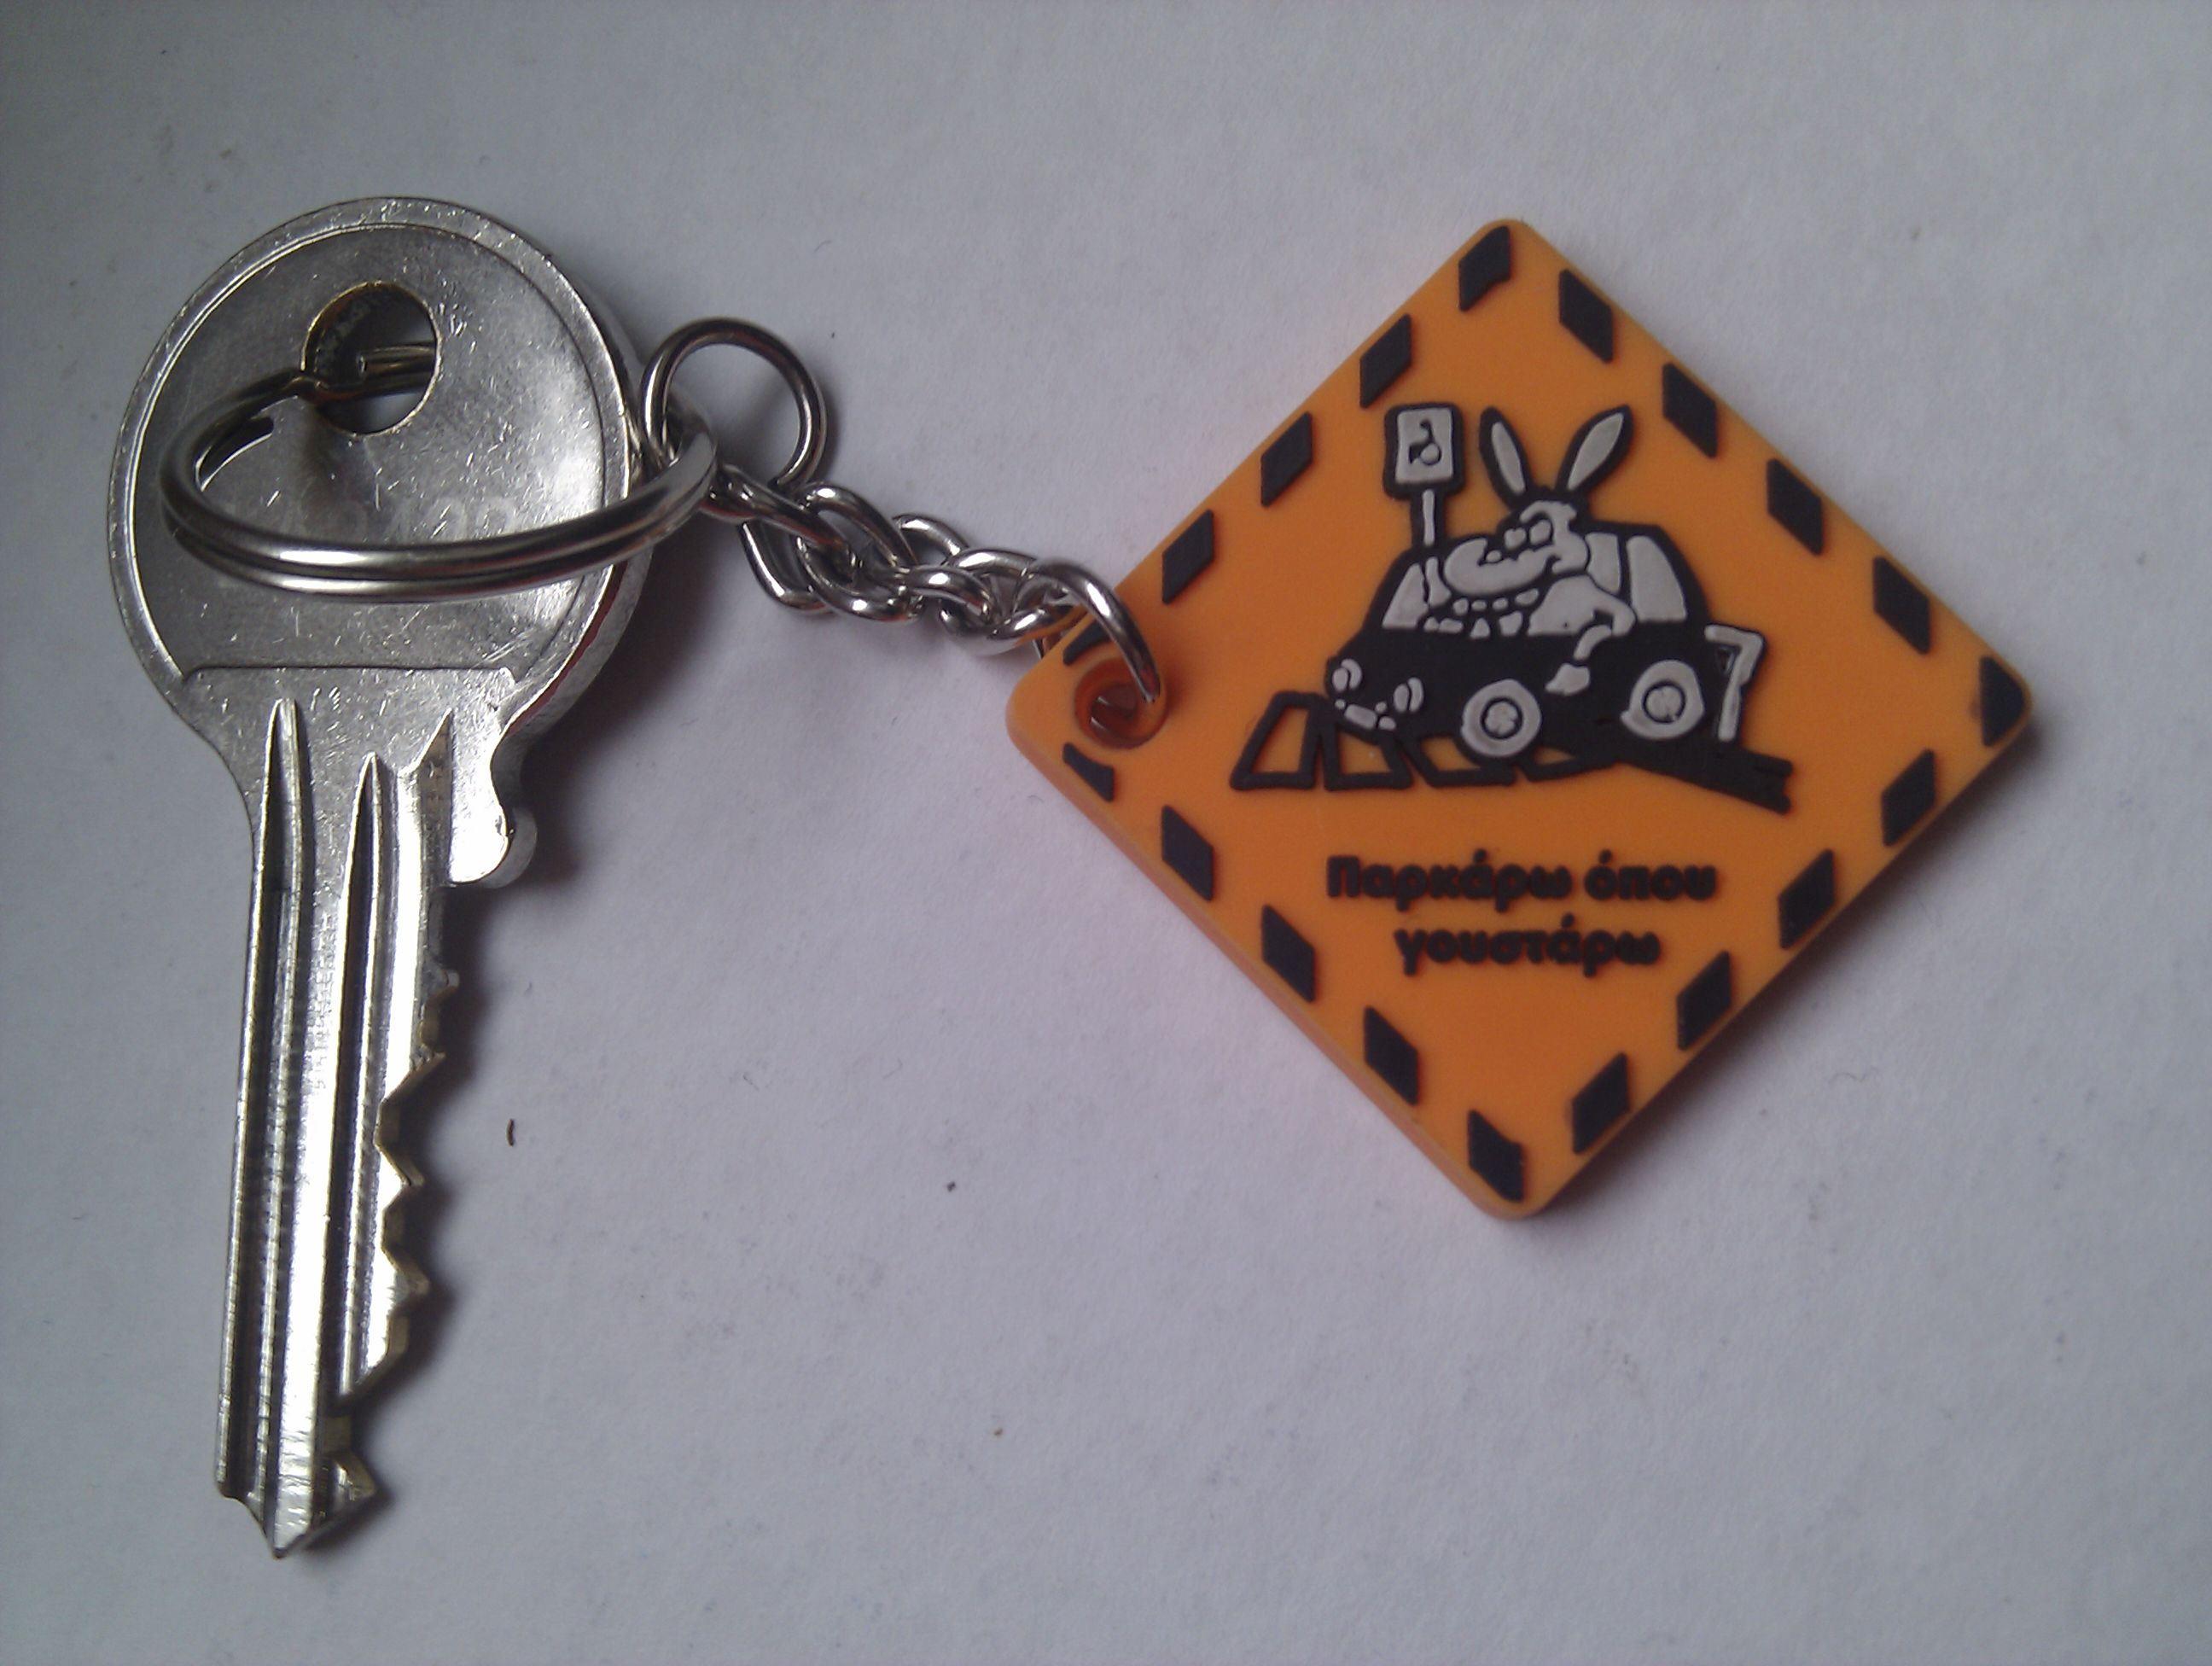 SP keychain with keys